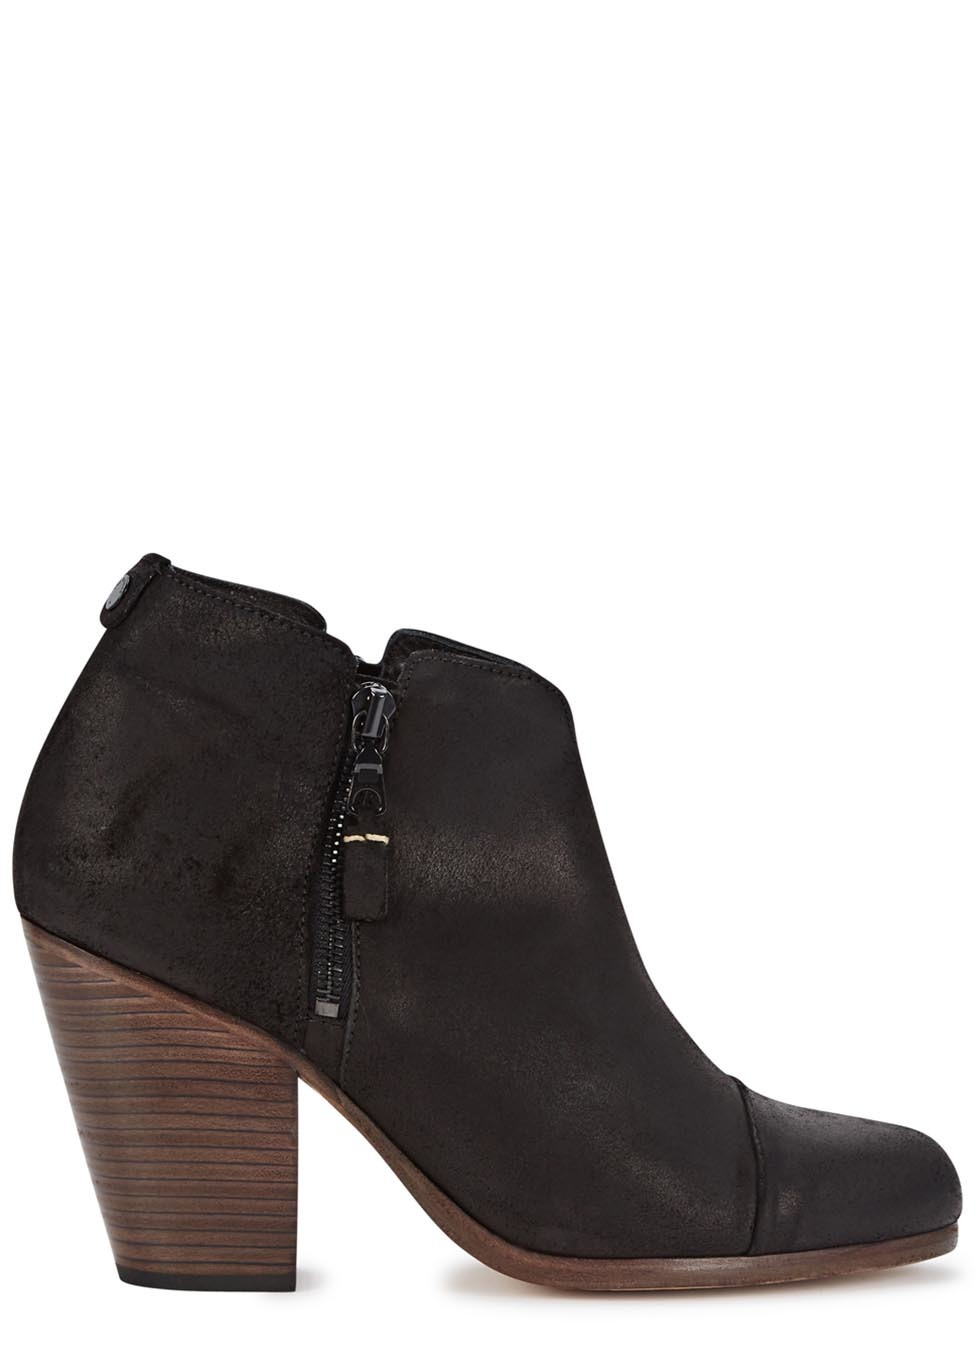 Margot Black Suede Ankle Boots Size - predominant colour: black; occasions: casual, creative work; material: suede; heel height: high; heel: block; toe: round toe; boot length: ankle boot; style: standard; finish: plain; pattern: plain; season: s/s 2016; wardrobe: highlight